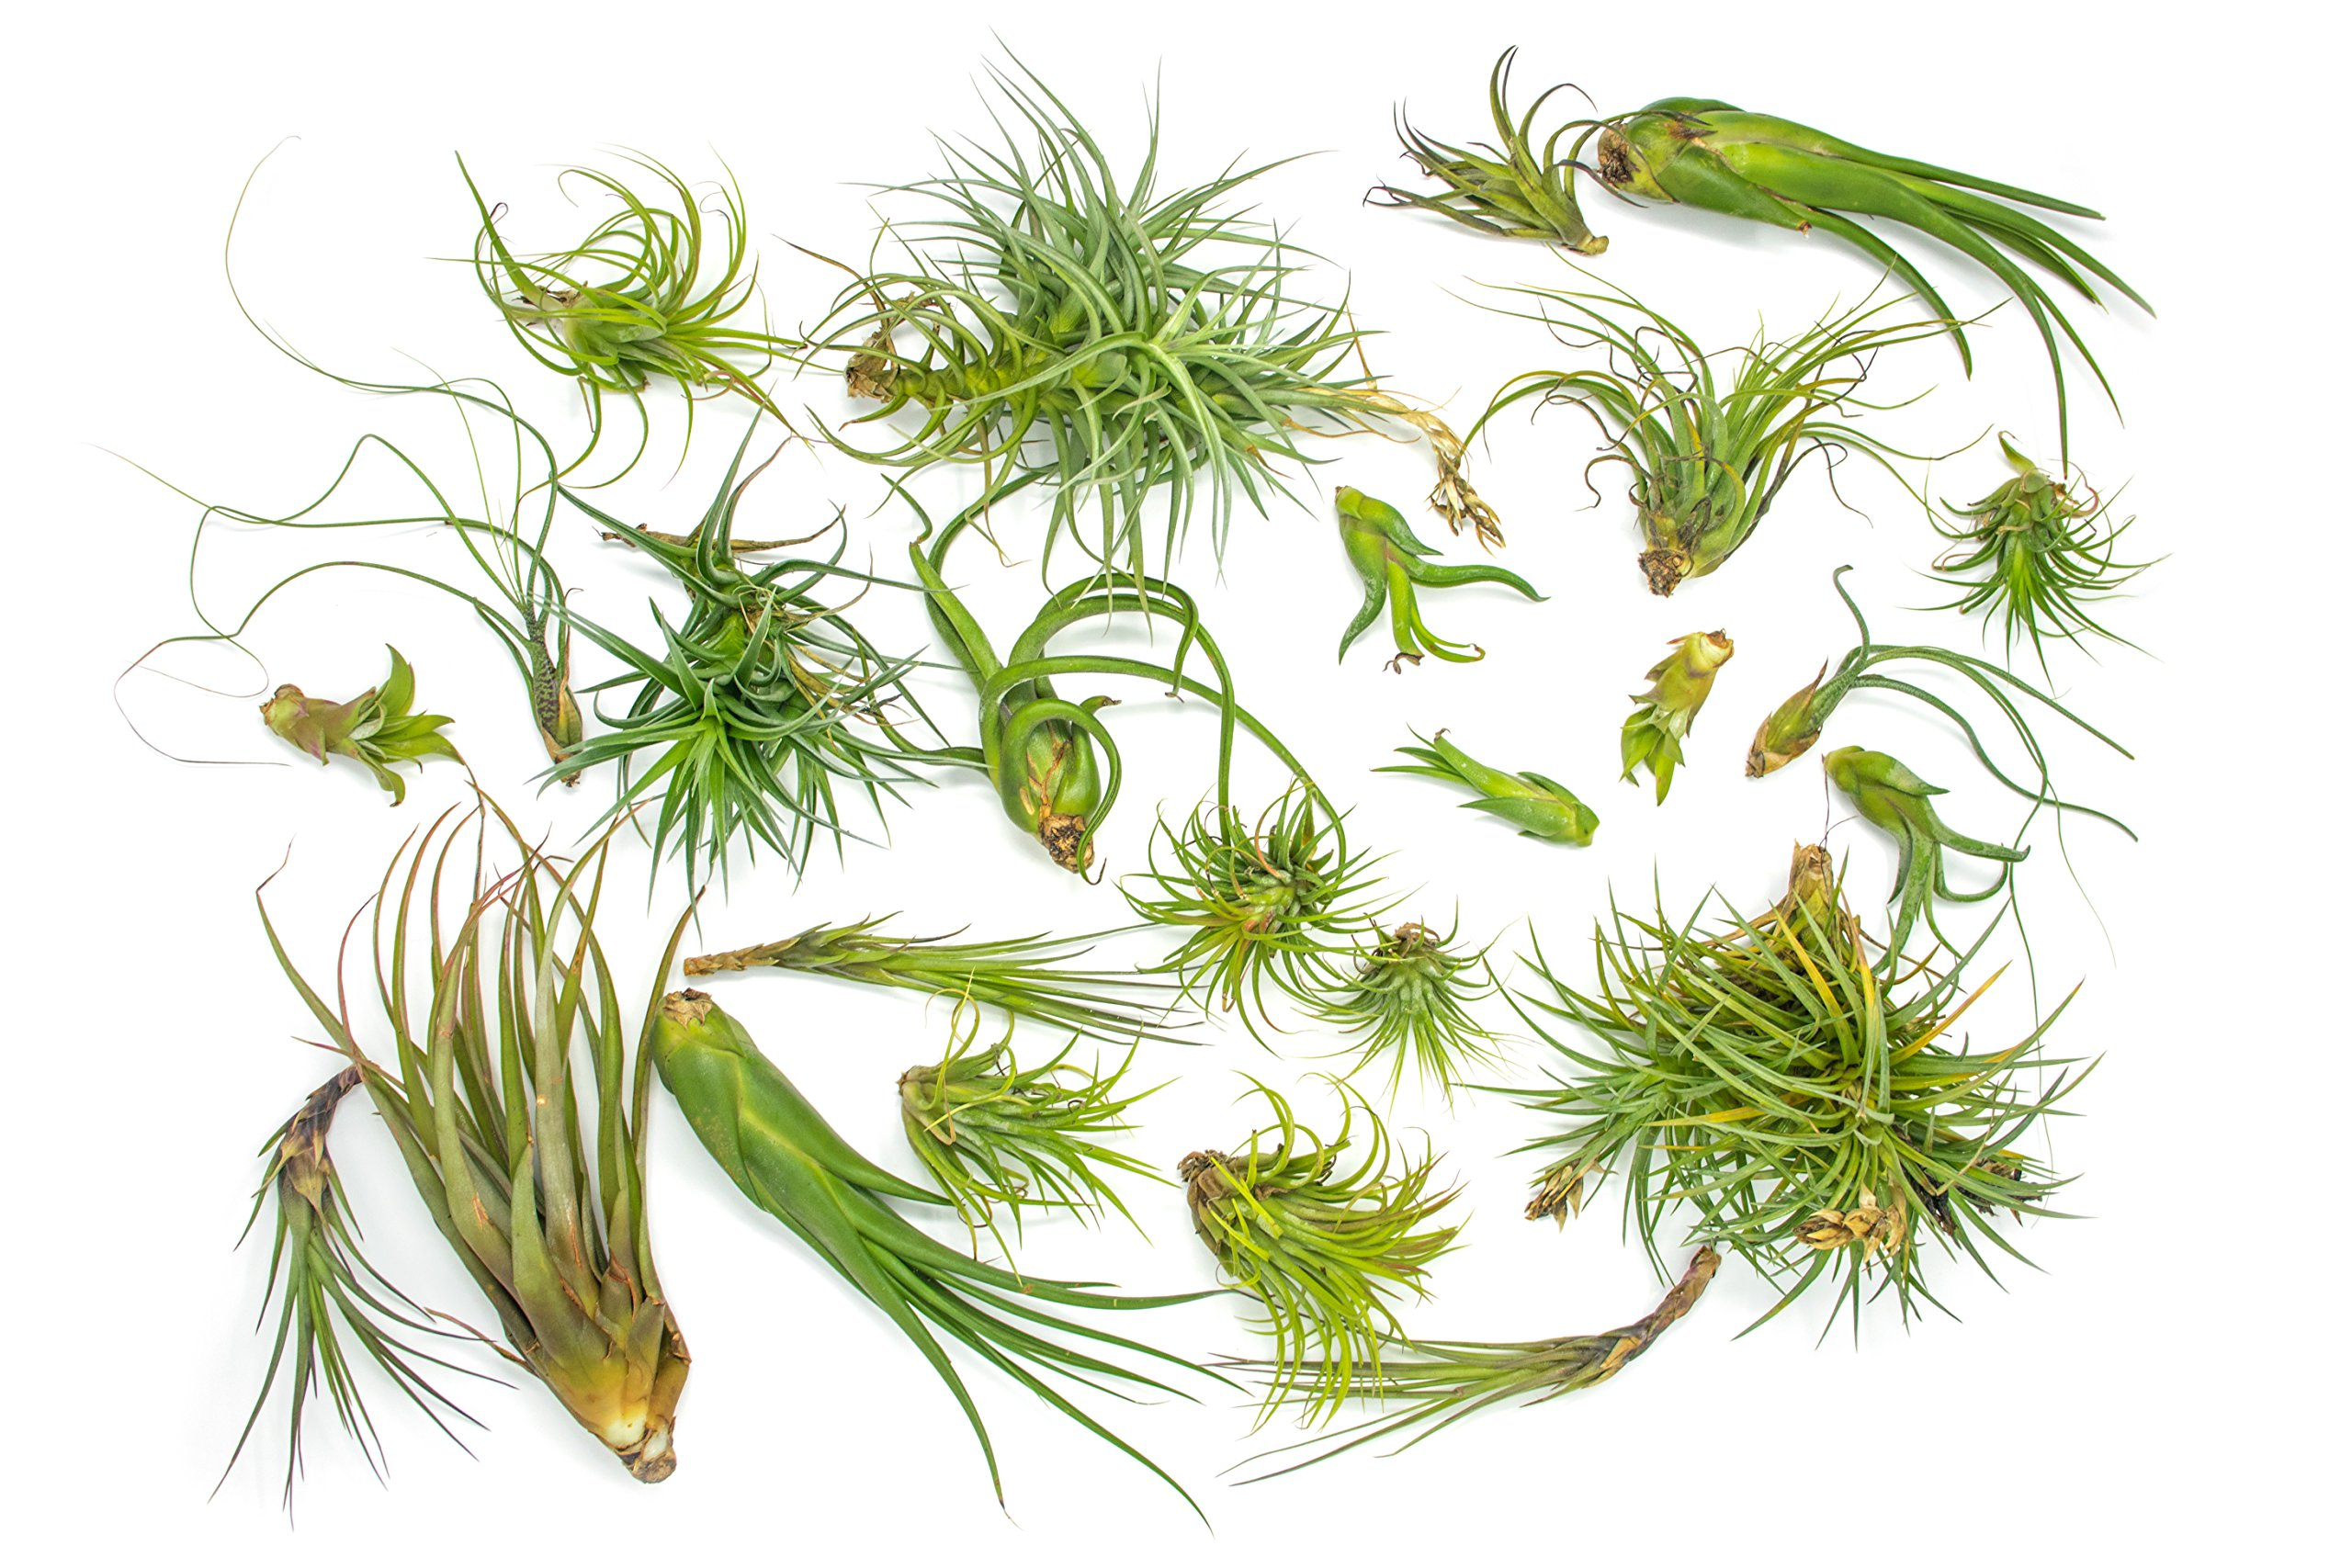 25 B-Grade Air Plant Variety Pack - Bulk Assorted Species of Live Tillandsia Tropical House Plants for Sale - 2 to 10 Inches Each - Air Plants for Indoor Home Decor